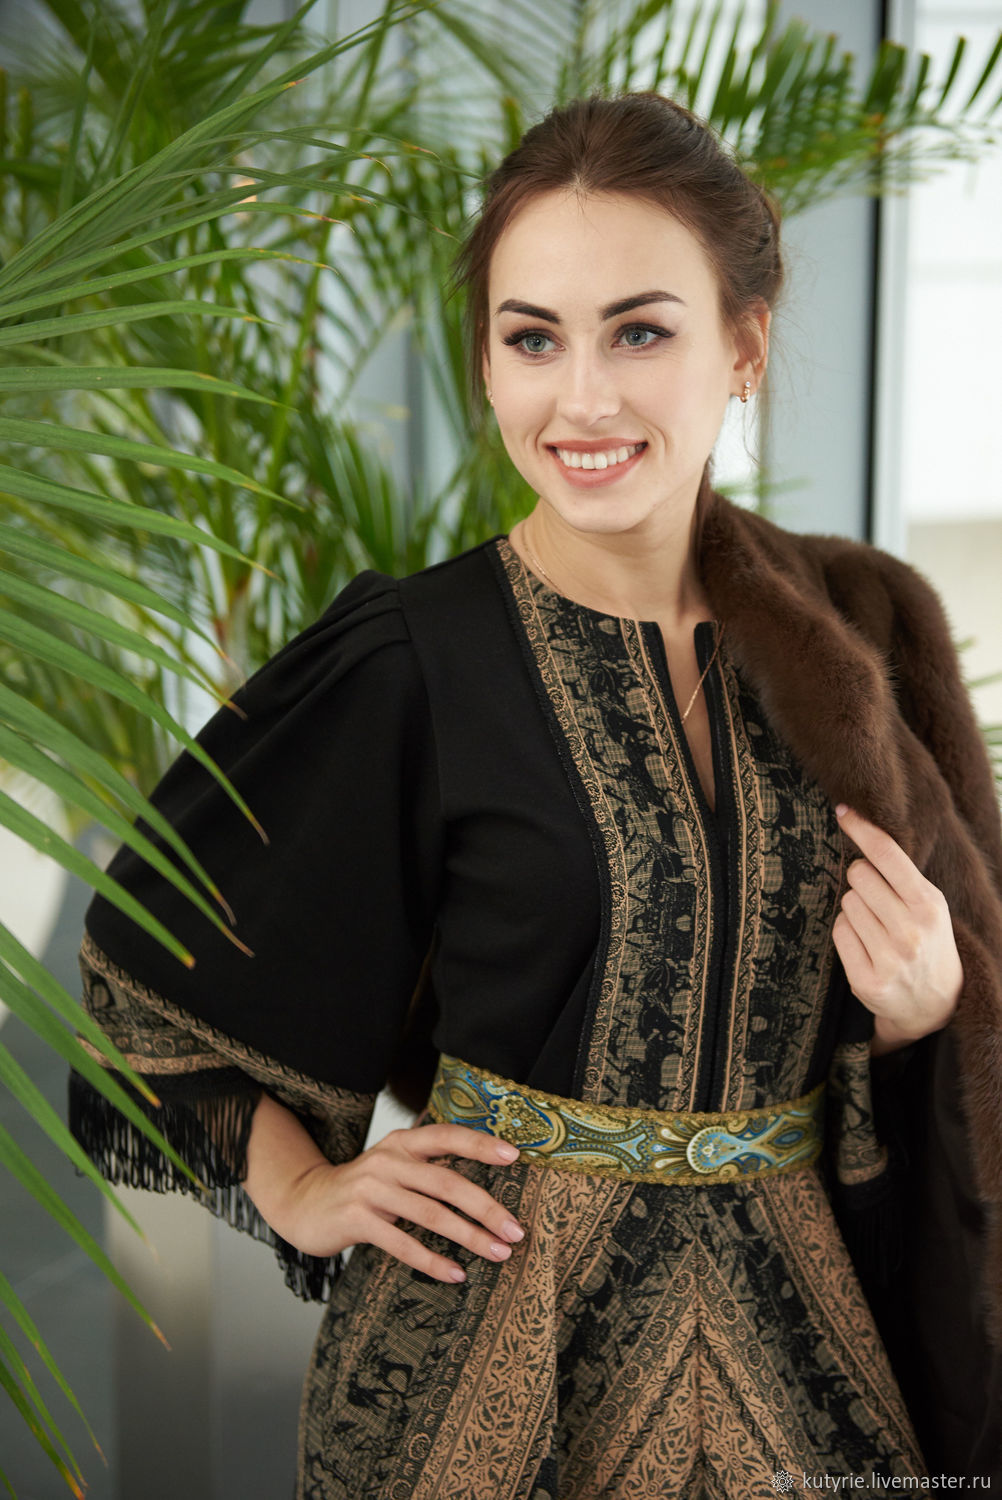 Author's dress 'daughter of the Leader' -2, Dresses, Moscow,  Фото №1